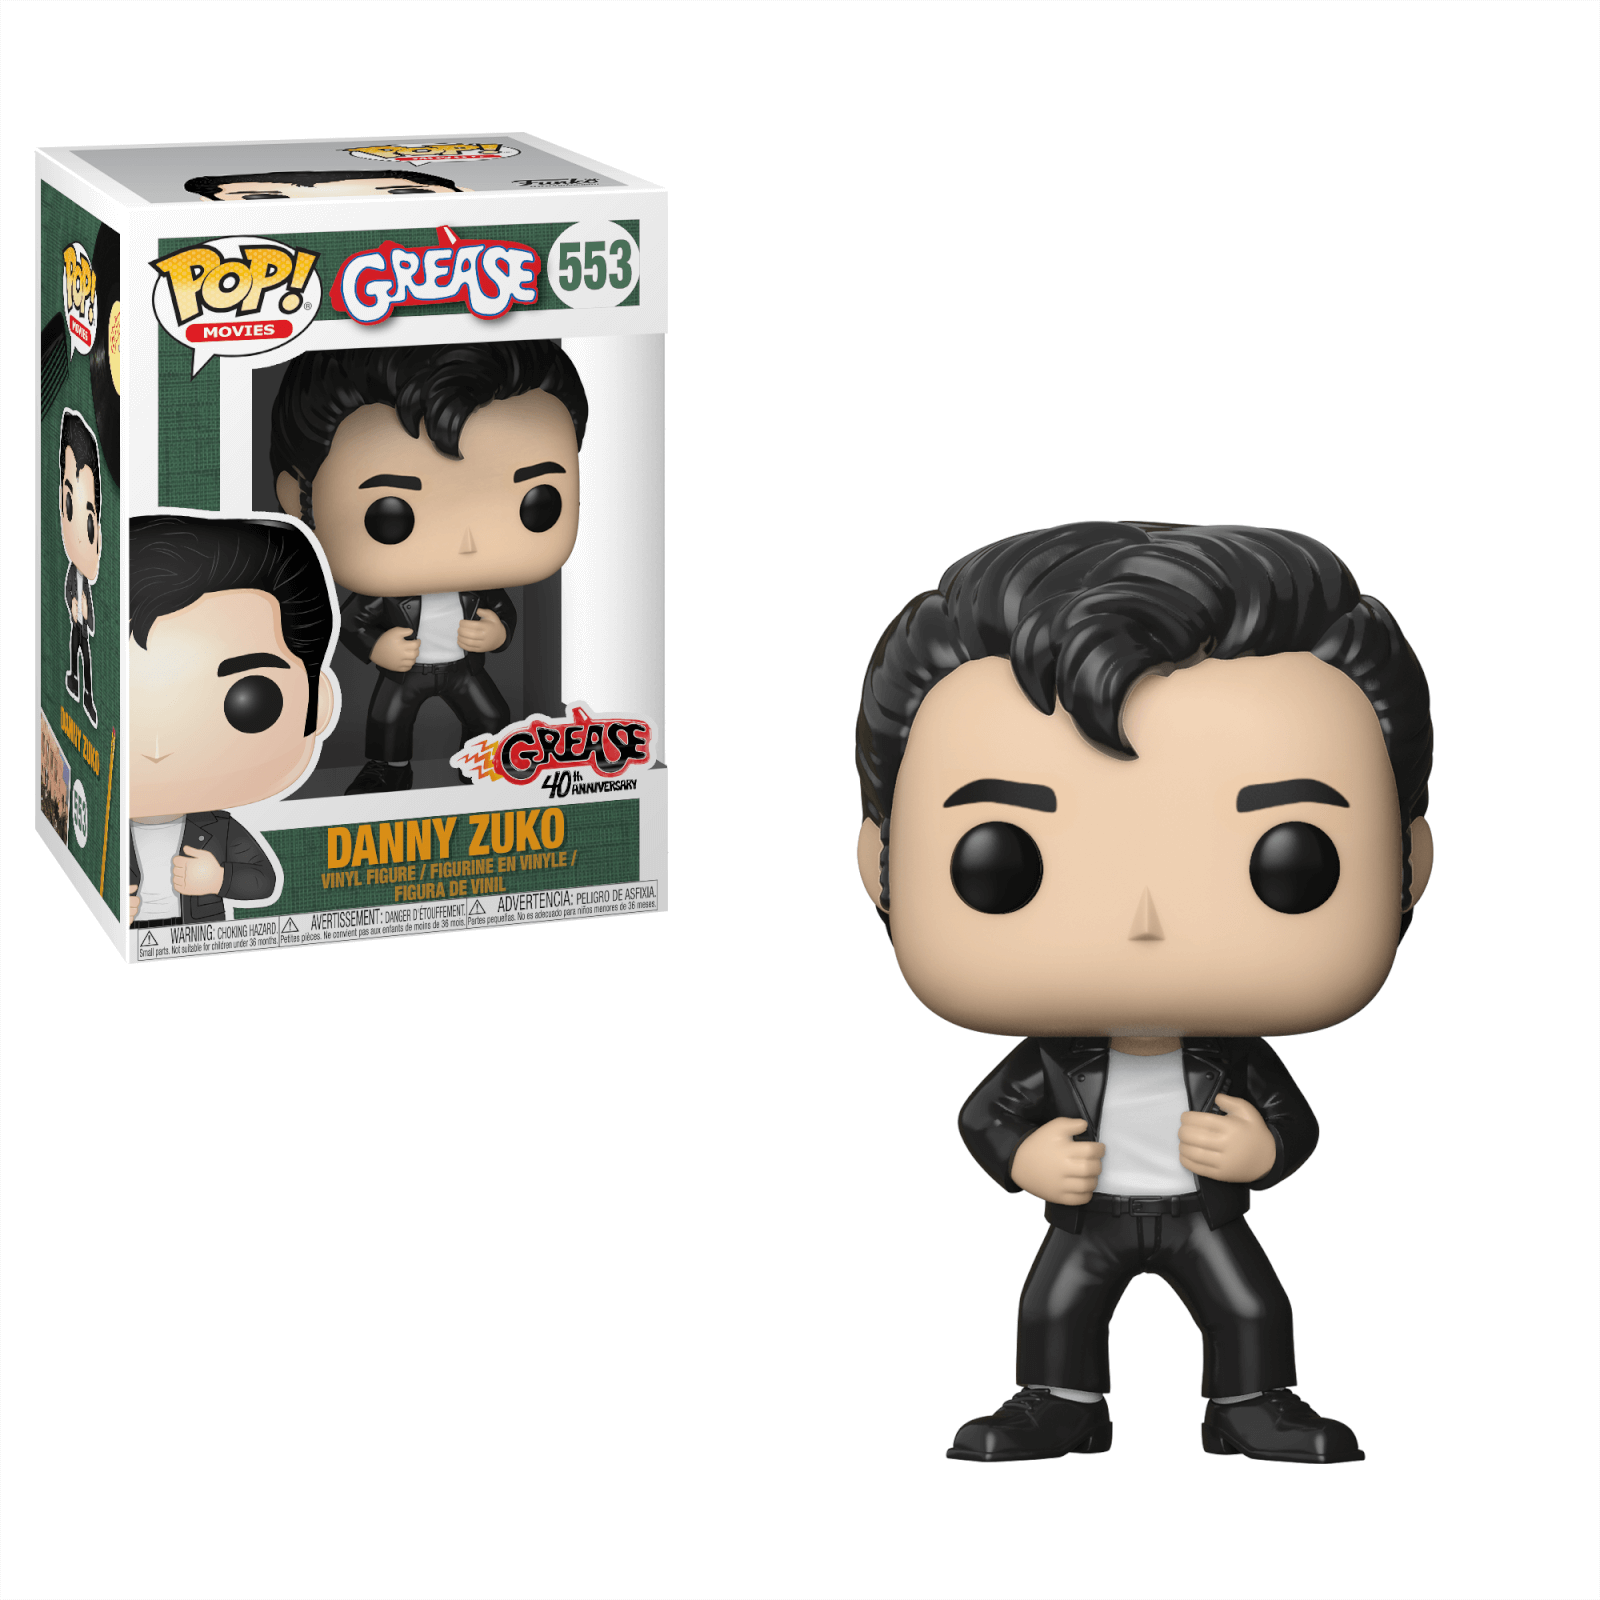 Grease Danny Zuko Pop! Vinyl Figure